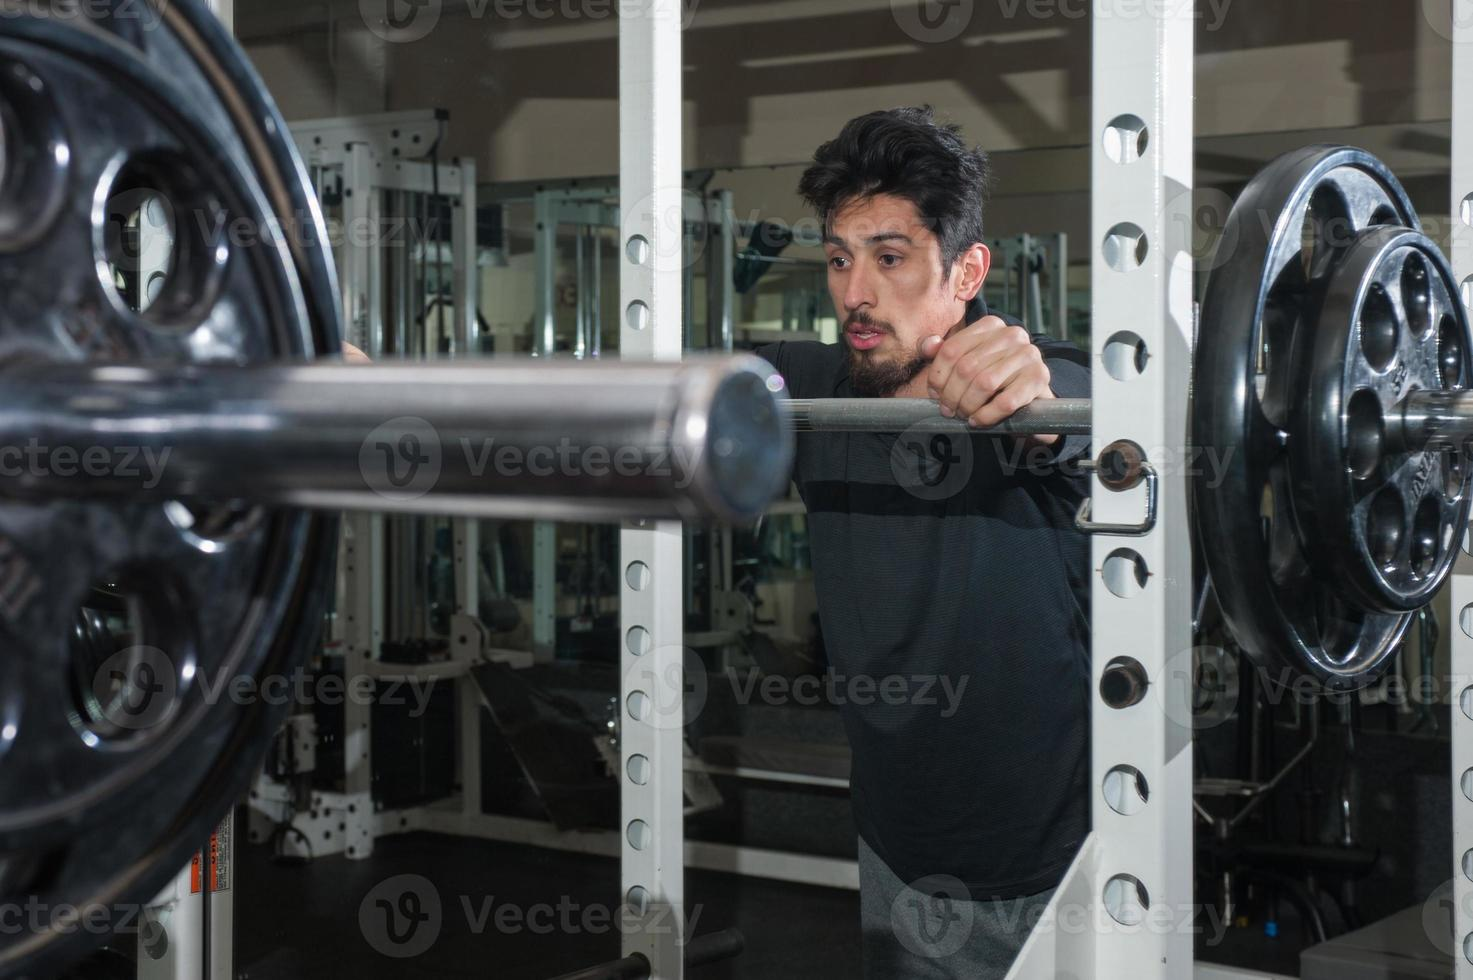 rust tussen sets squats foto